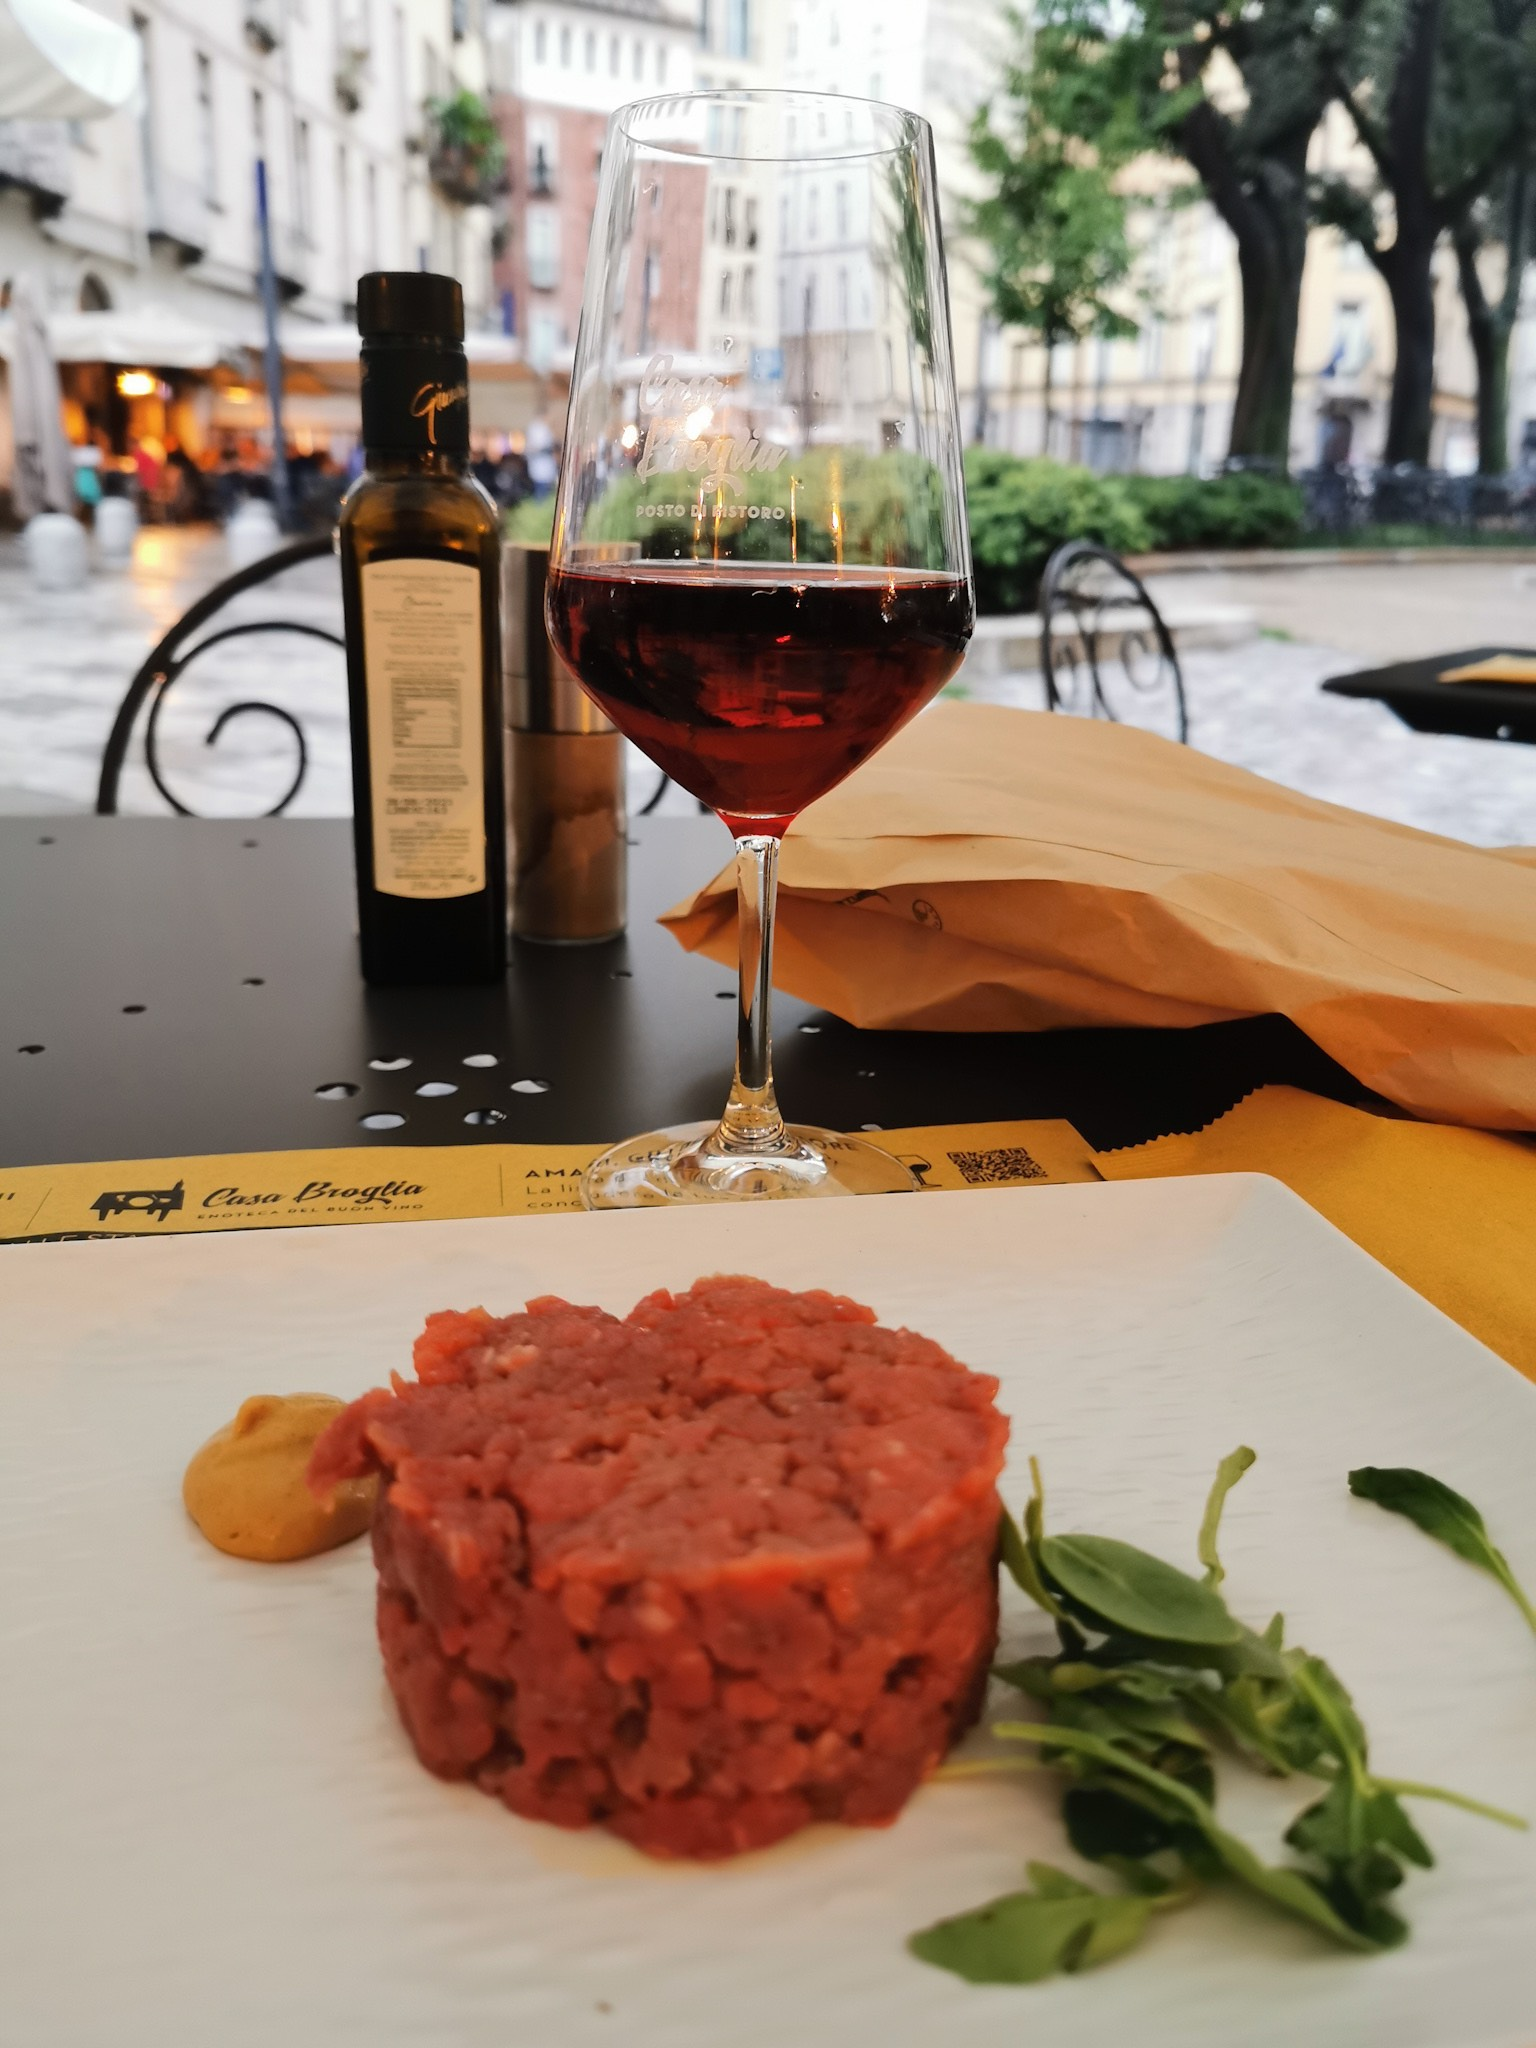 Raw meat tartare, a typical dish of Turin